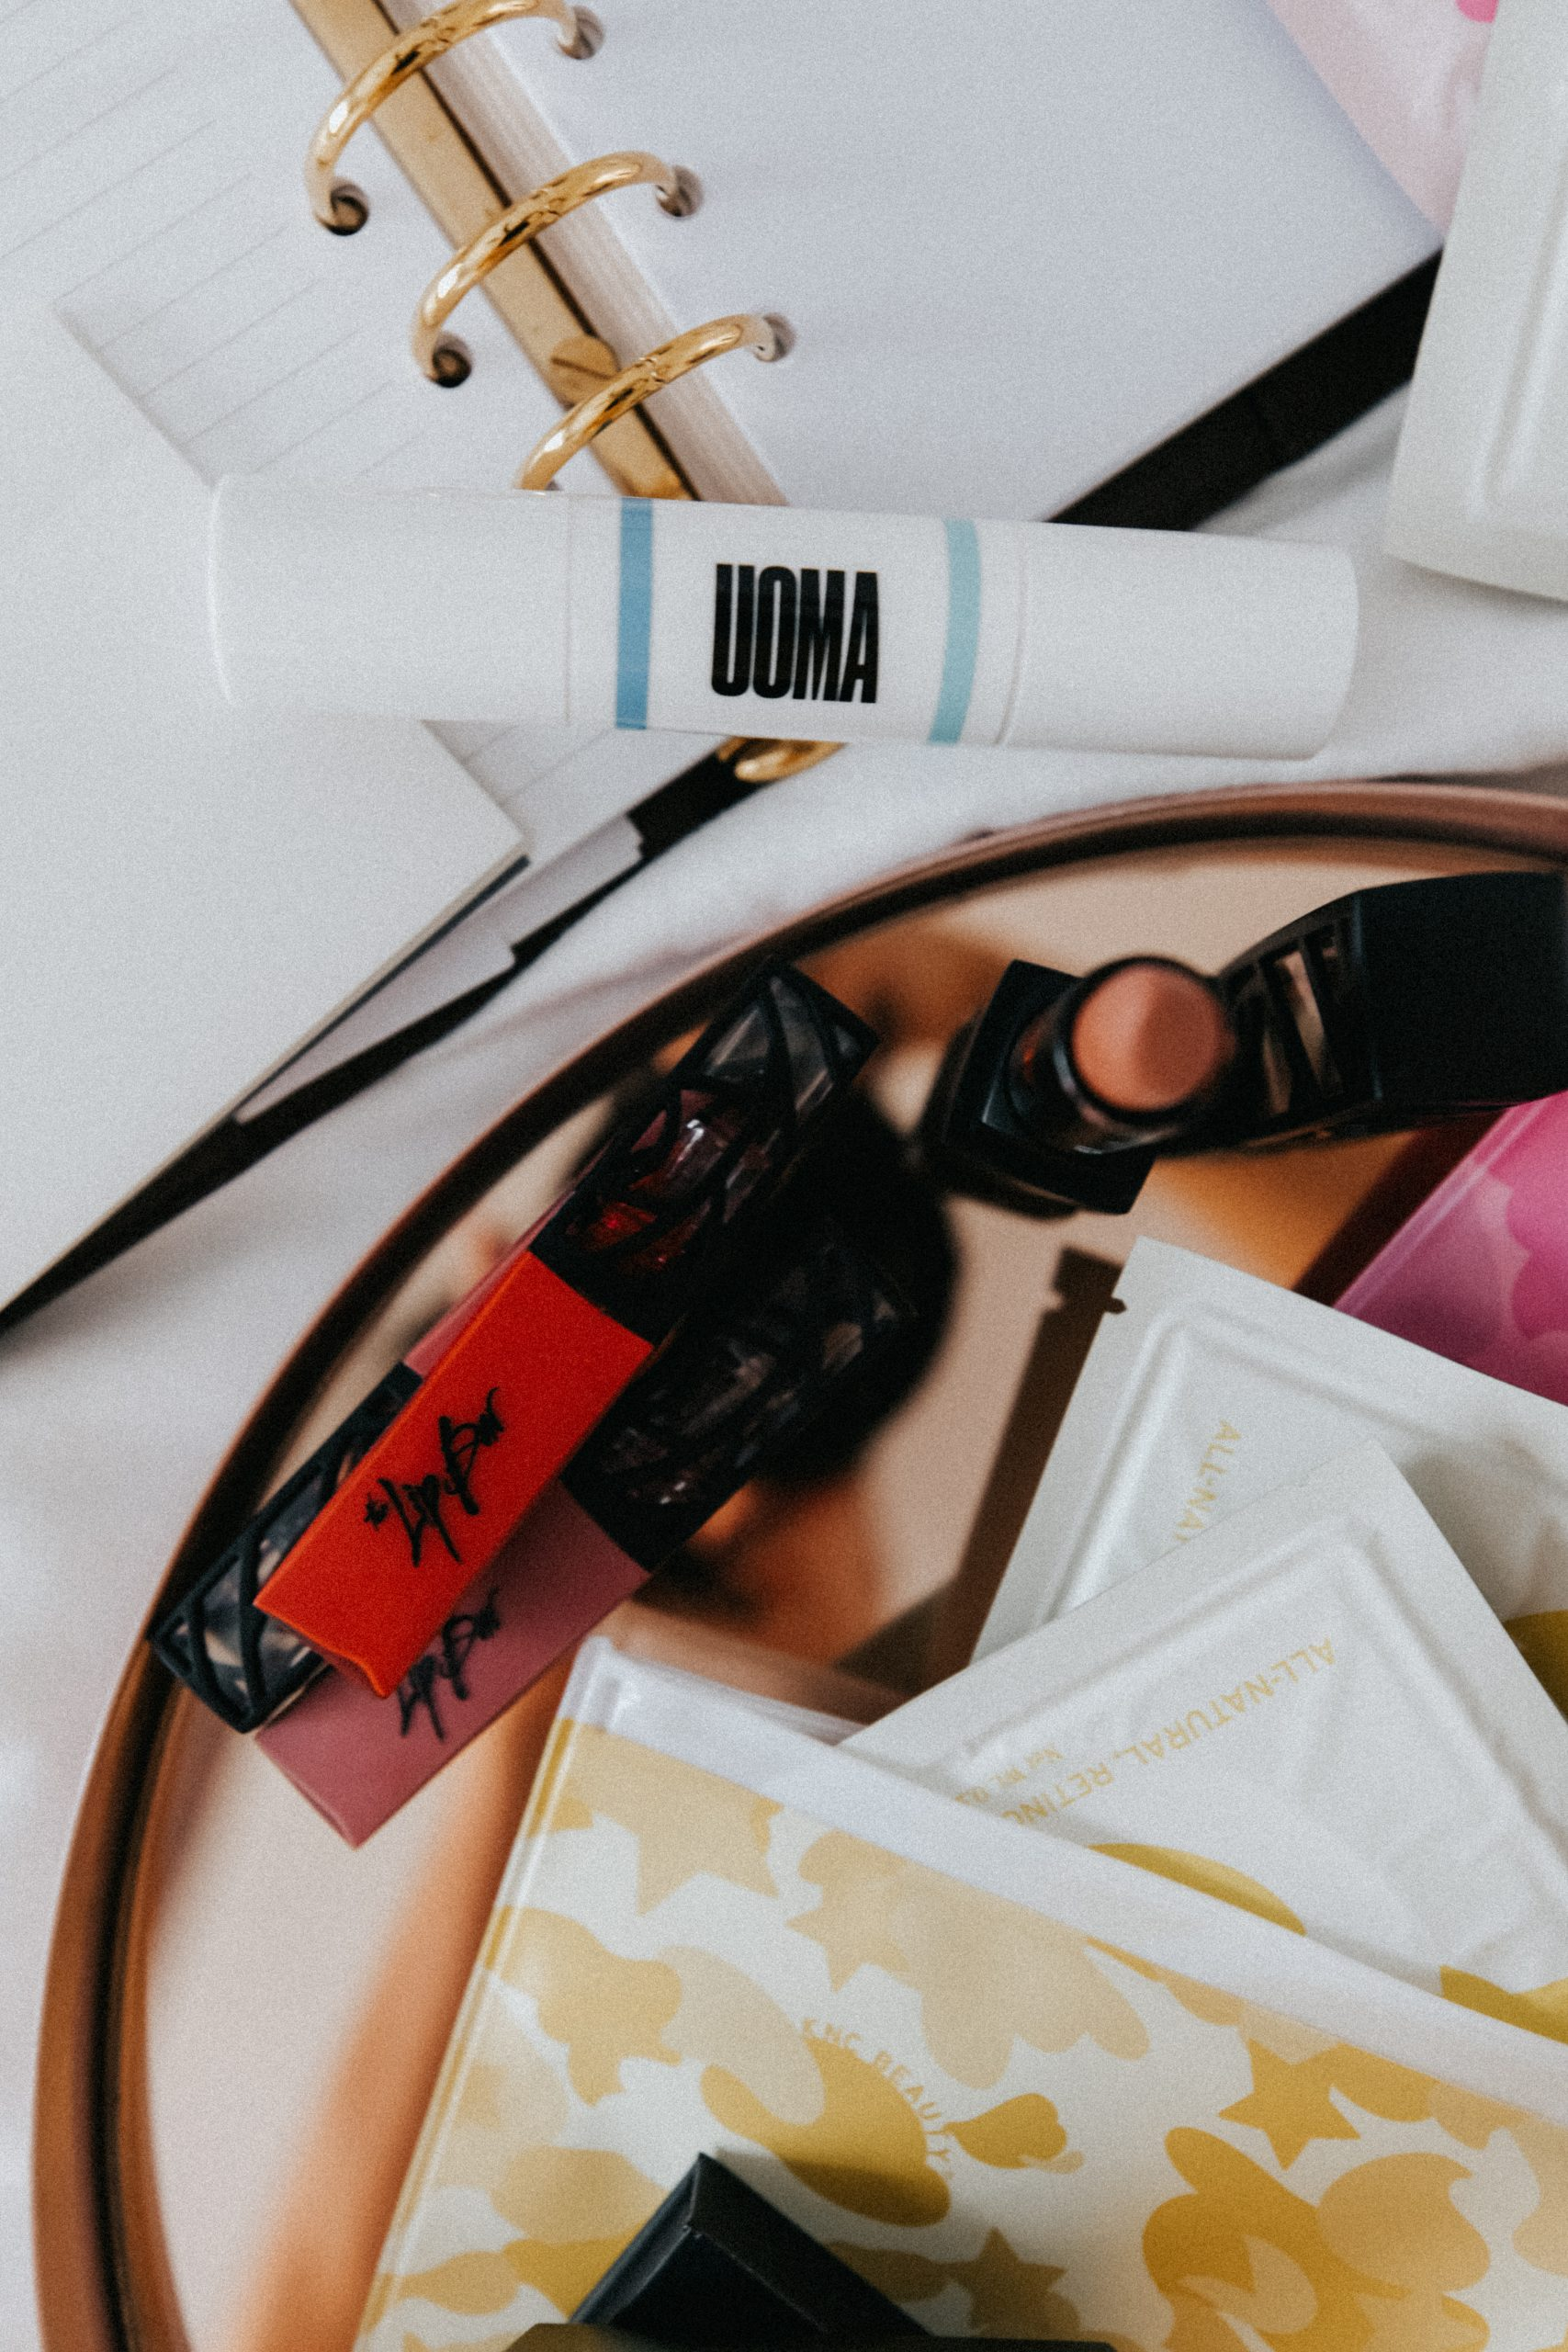 Black owned makeup brands, Uoma and Lip Bar